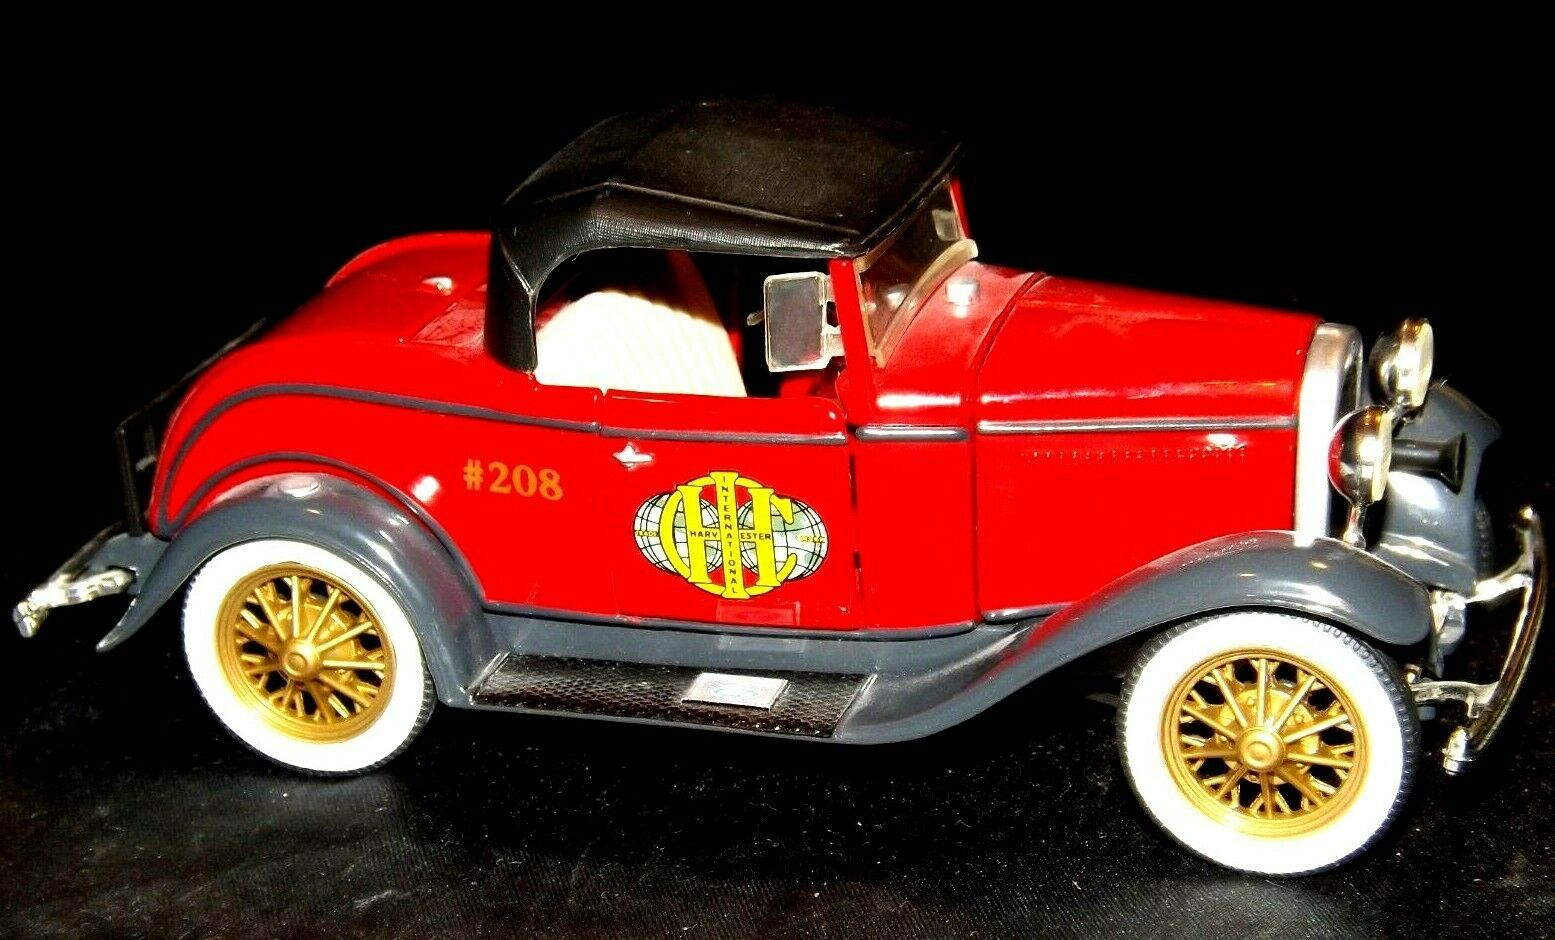 ERTL 1930 Ford Model A Convertible Roadster Bank AA19-1629 Vintage #208